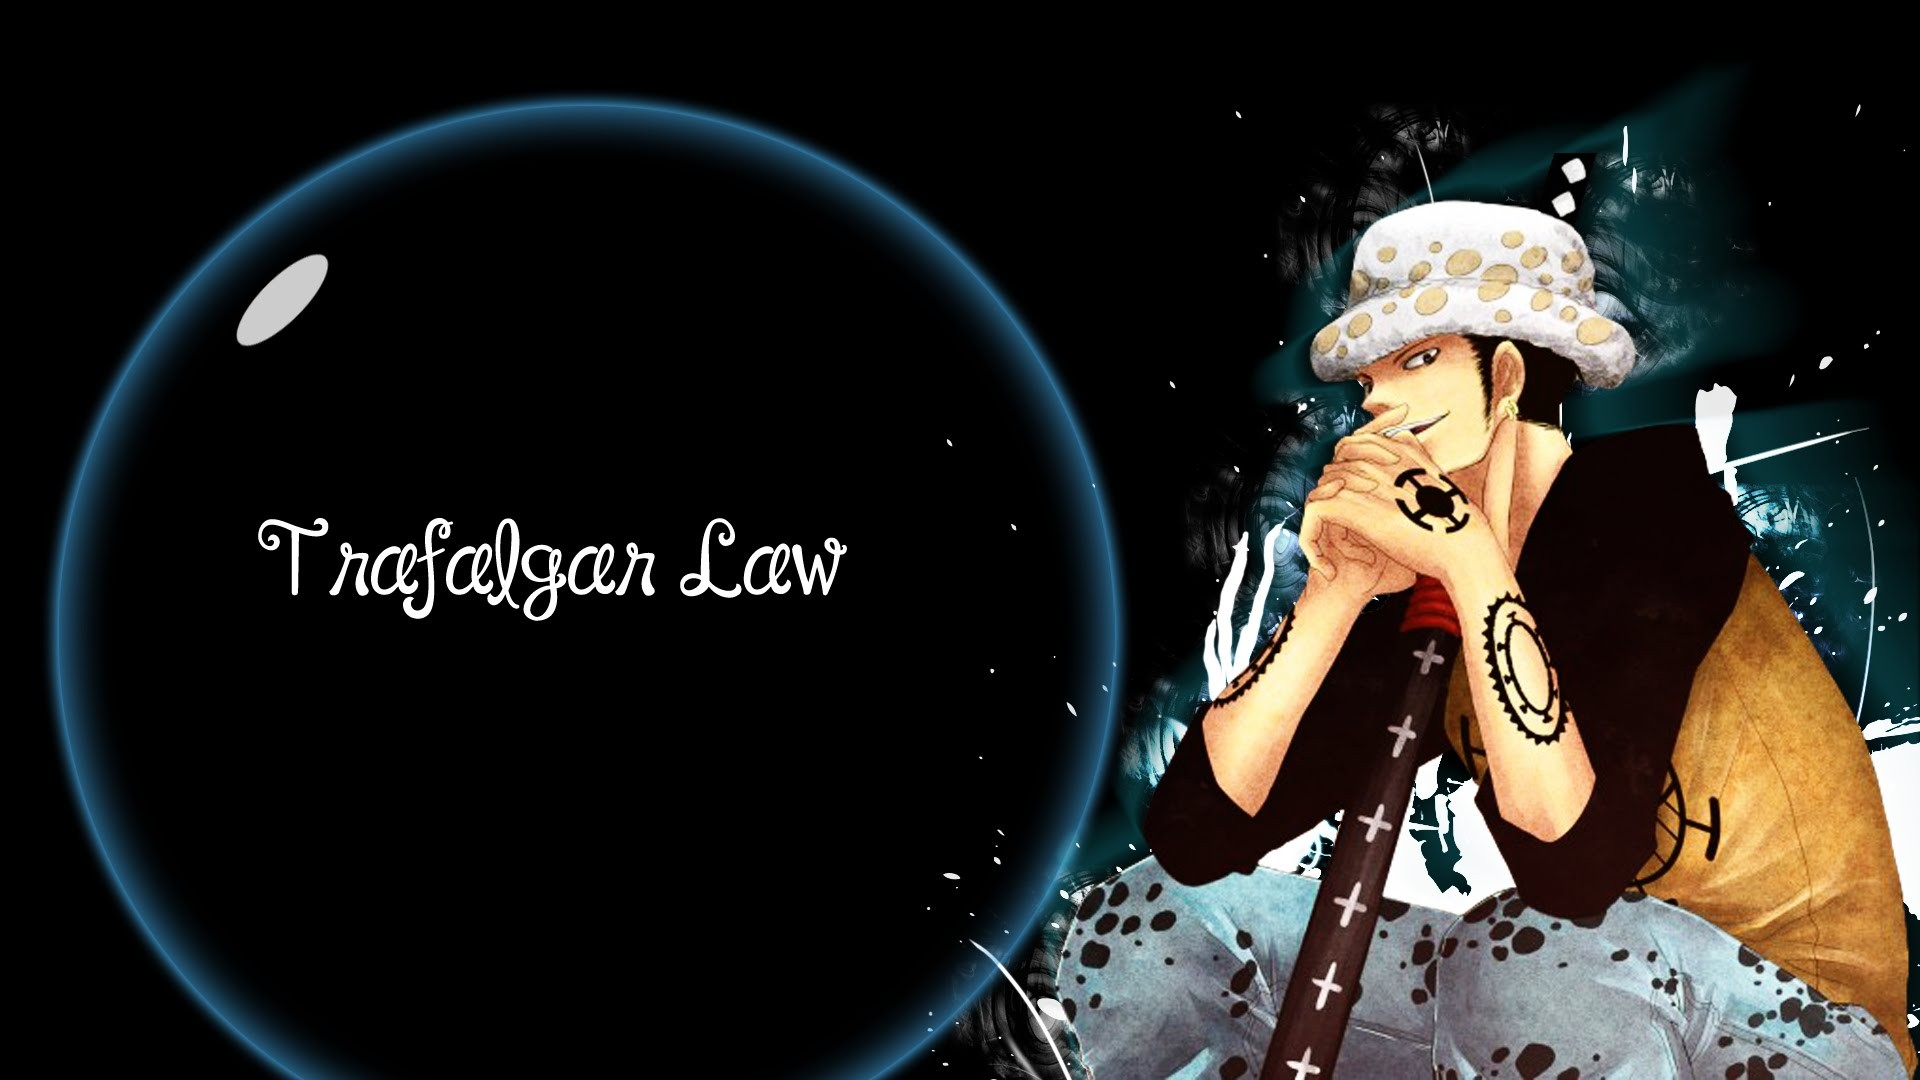 trafalgar law wallpaper